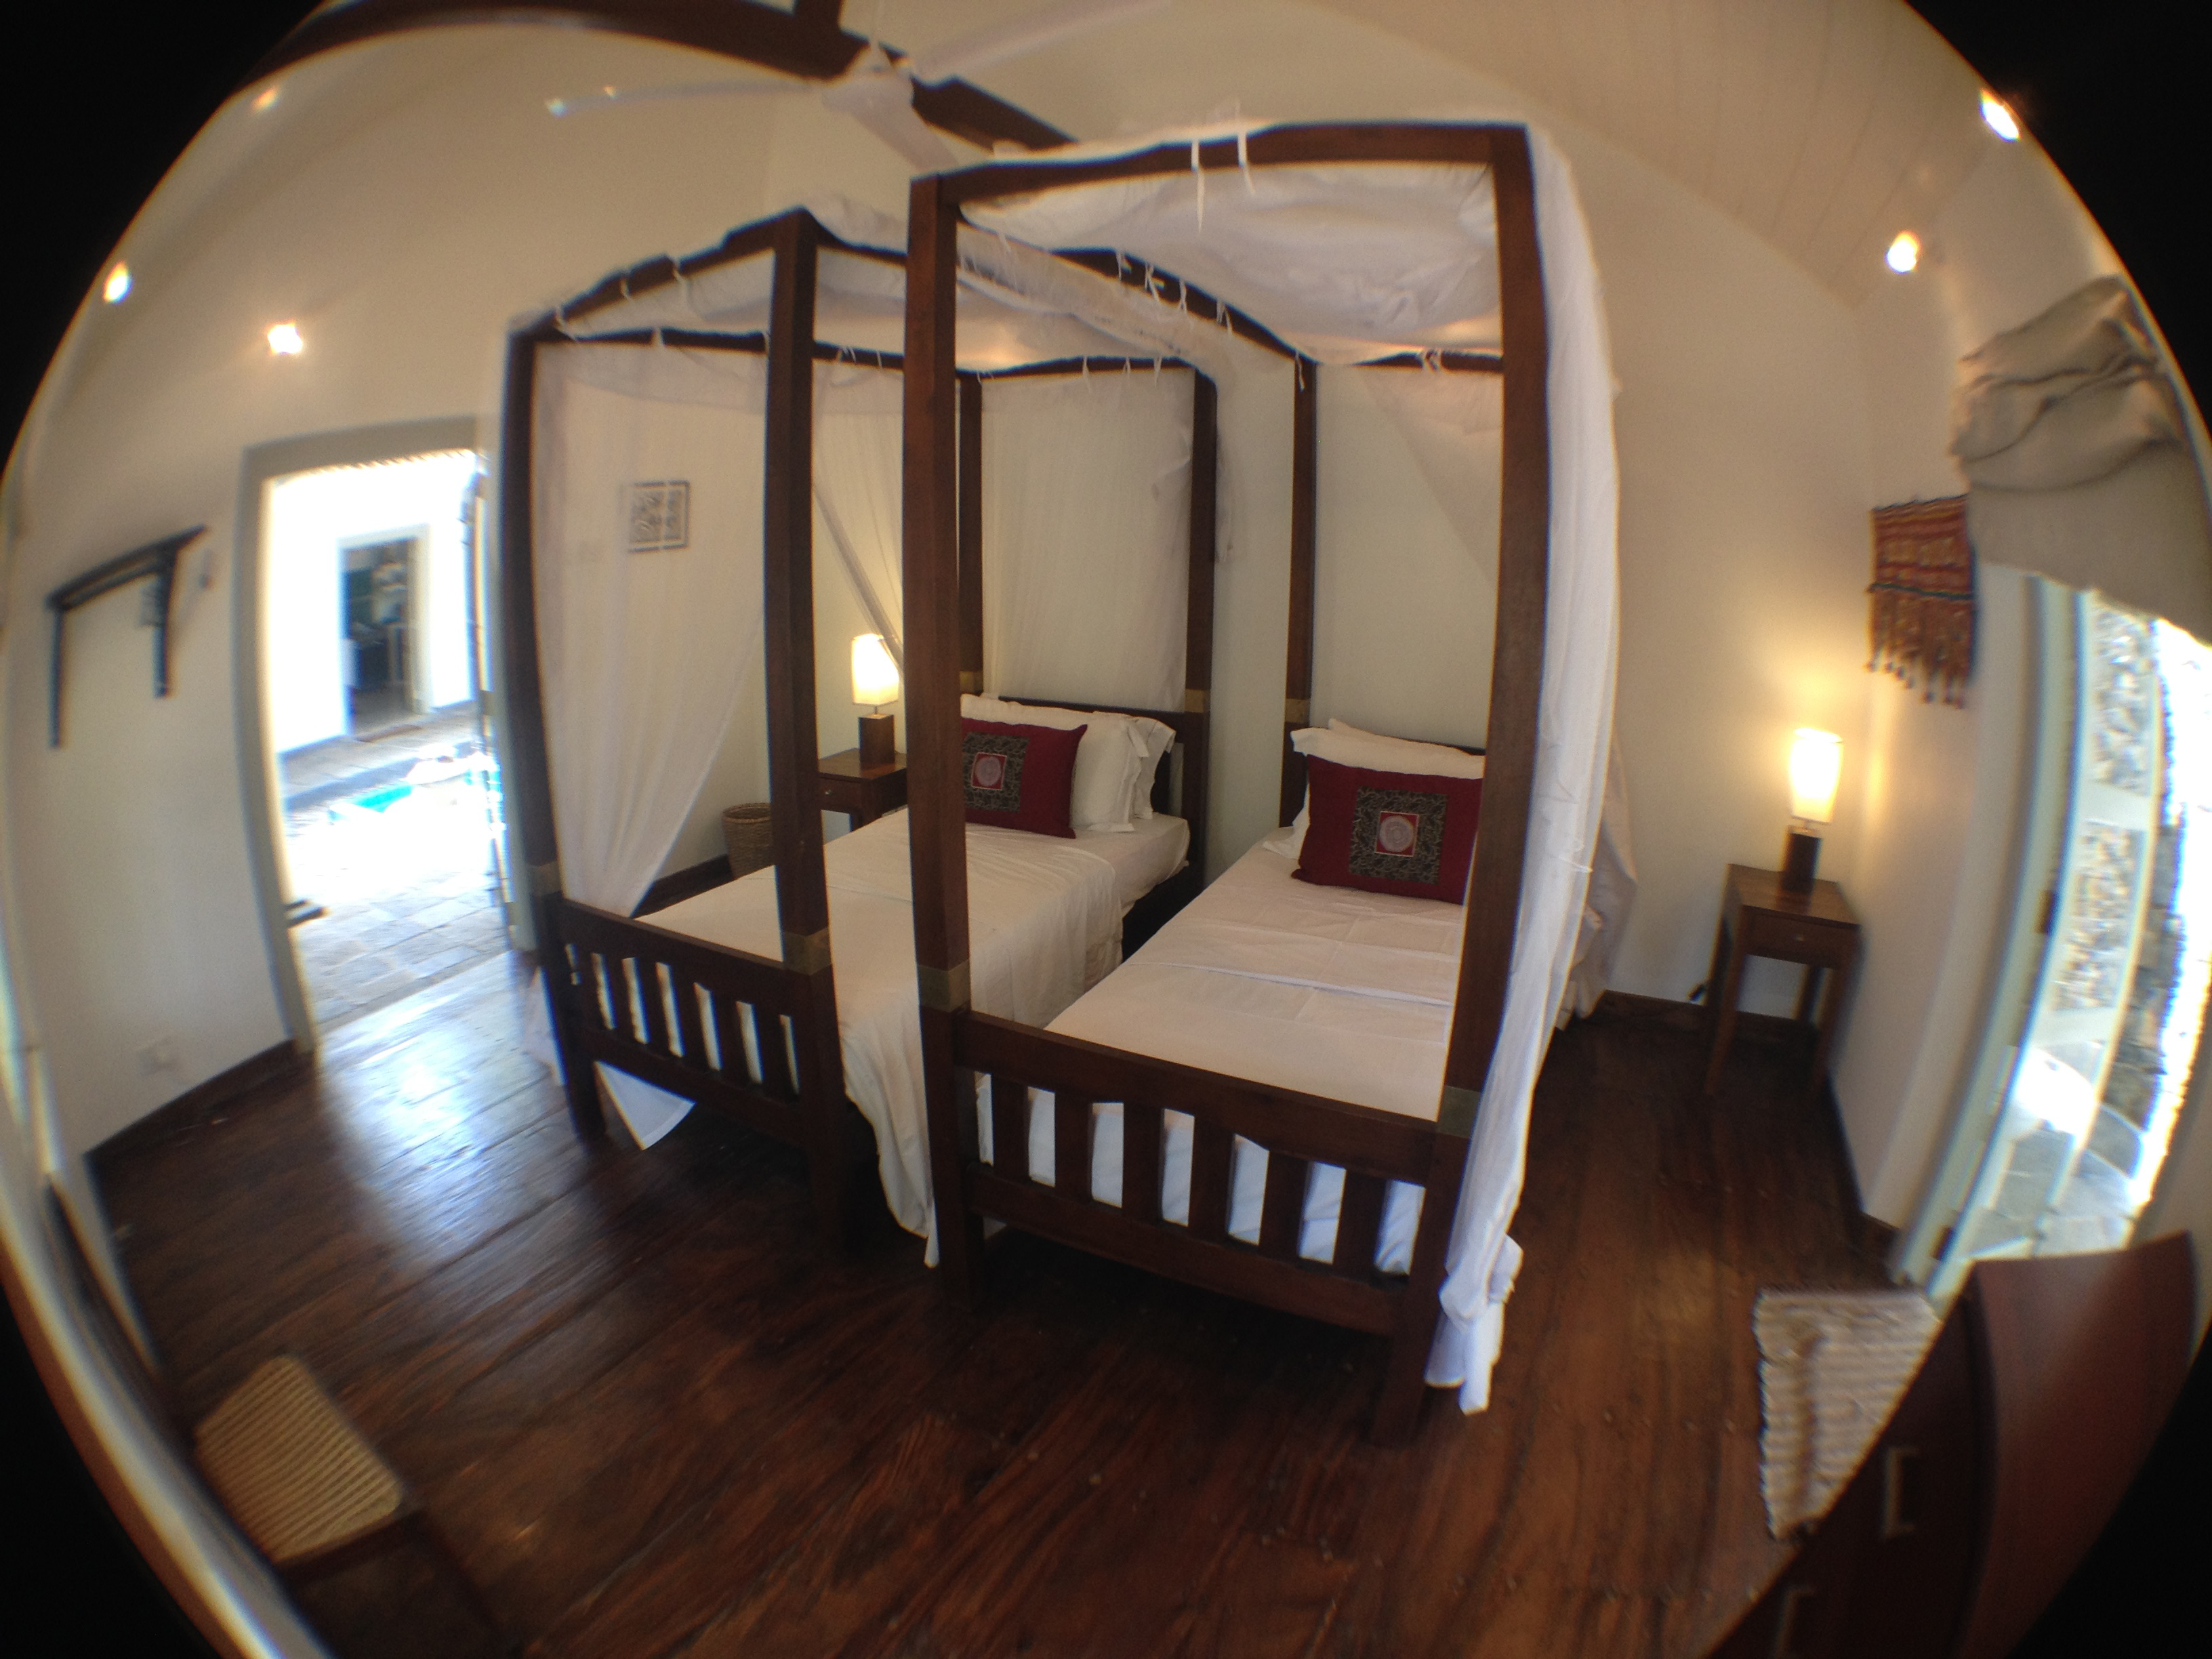 Room features wooden floor and a ceiling fan.